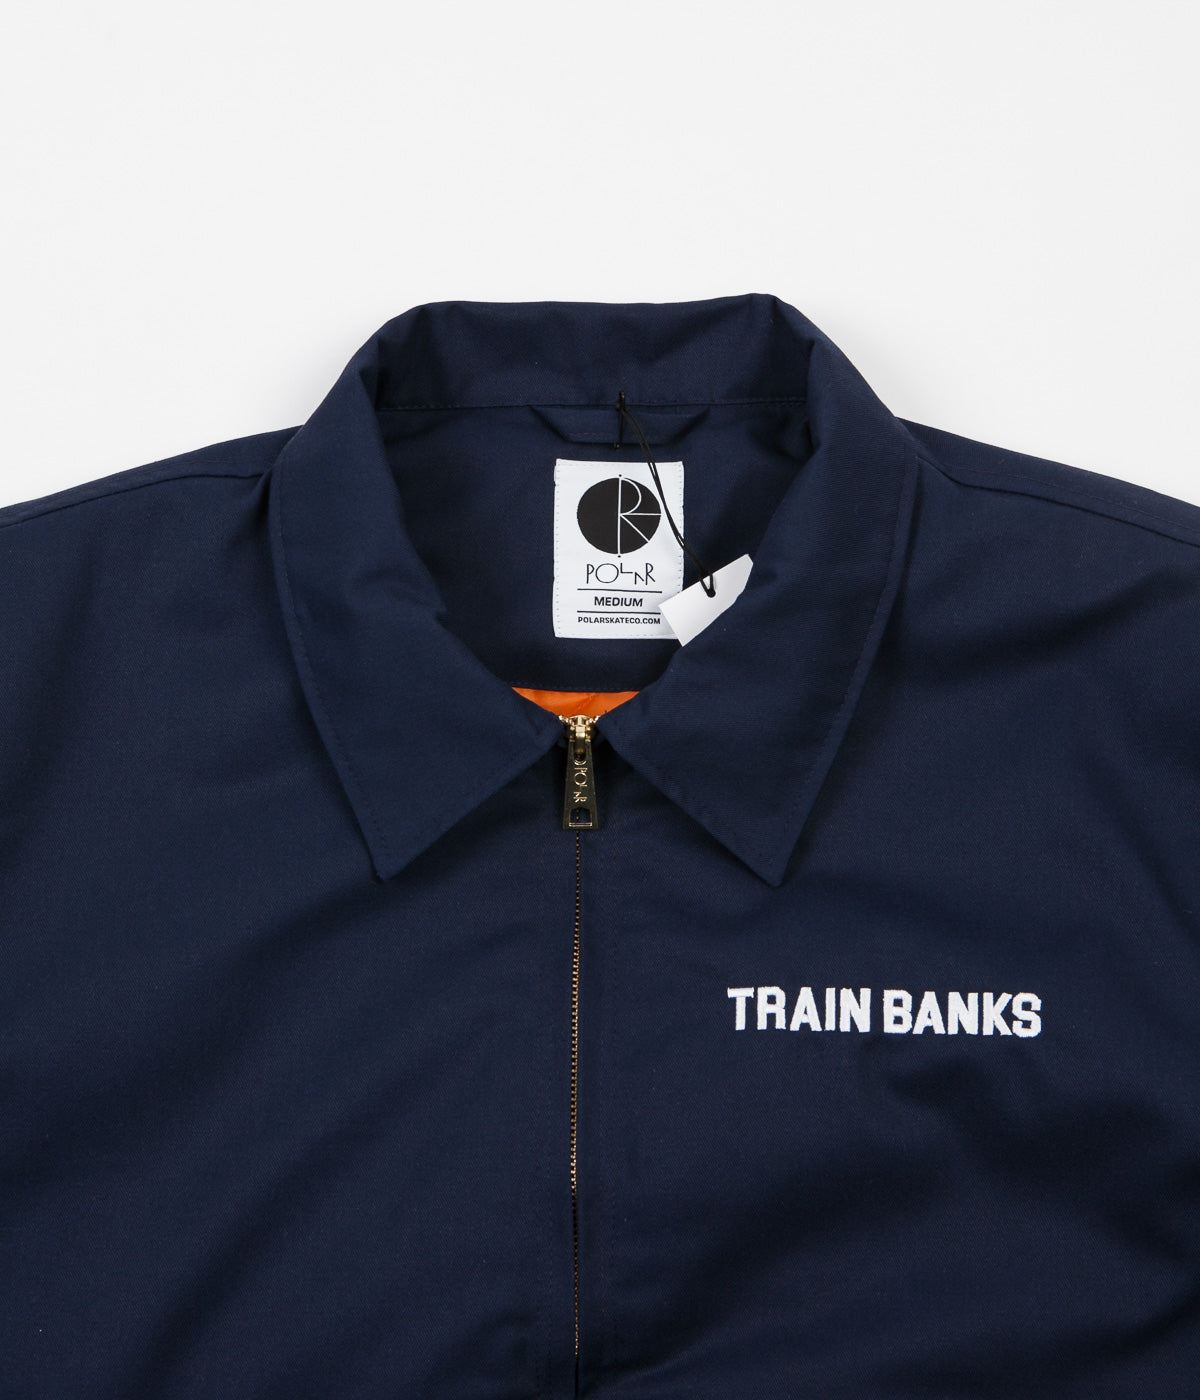 Polar Train Banks Jacket - Navy